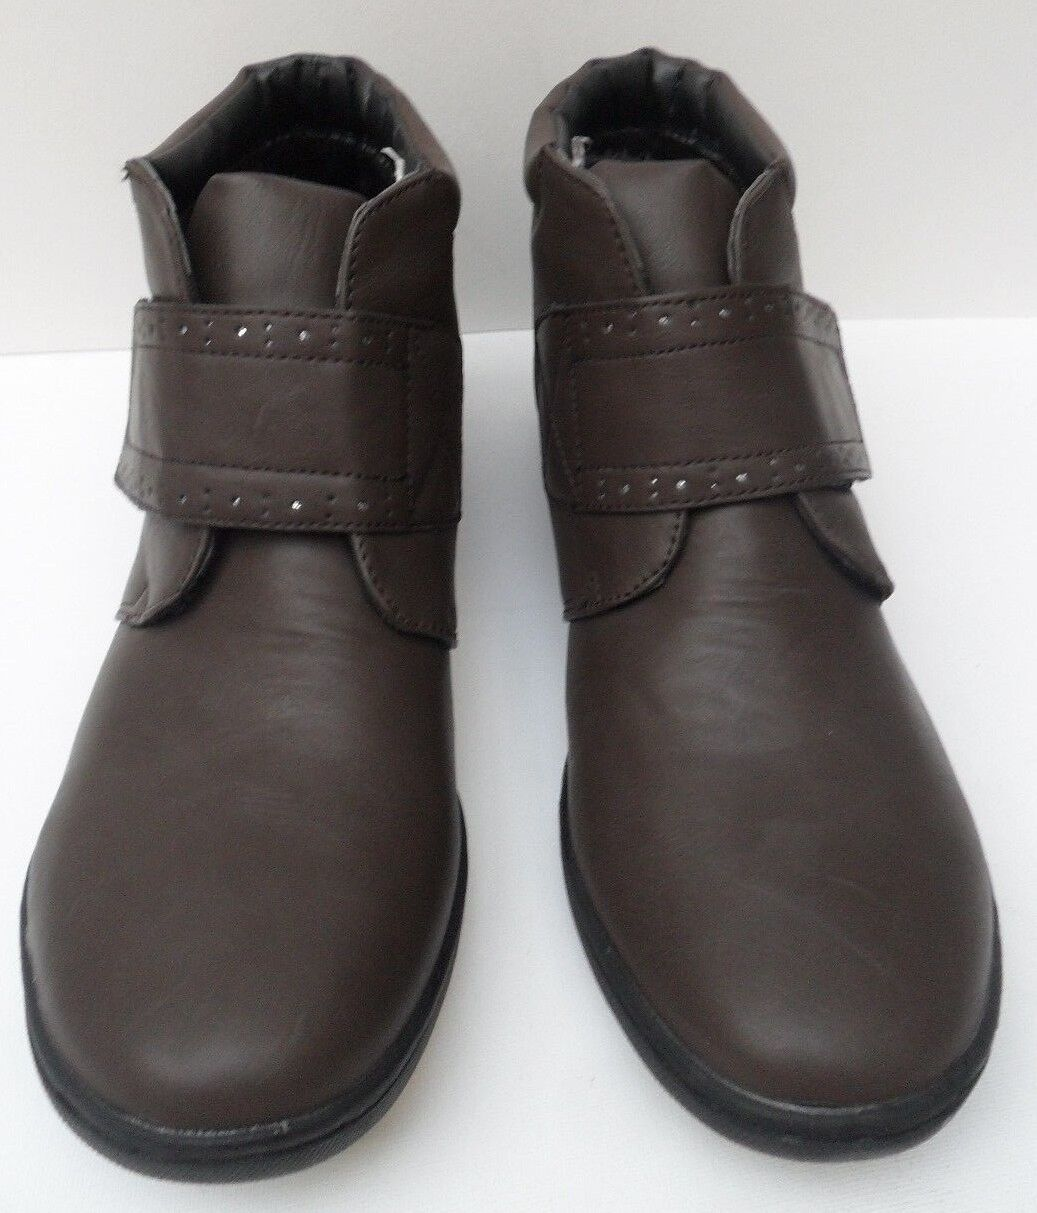 Womens/Girls Dr Kellar Brown Ankle Boots - Size UK 4